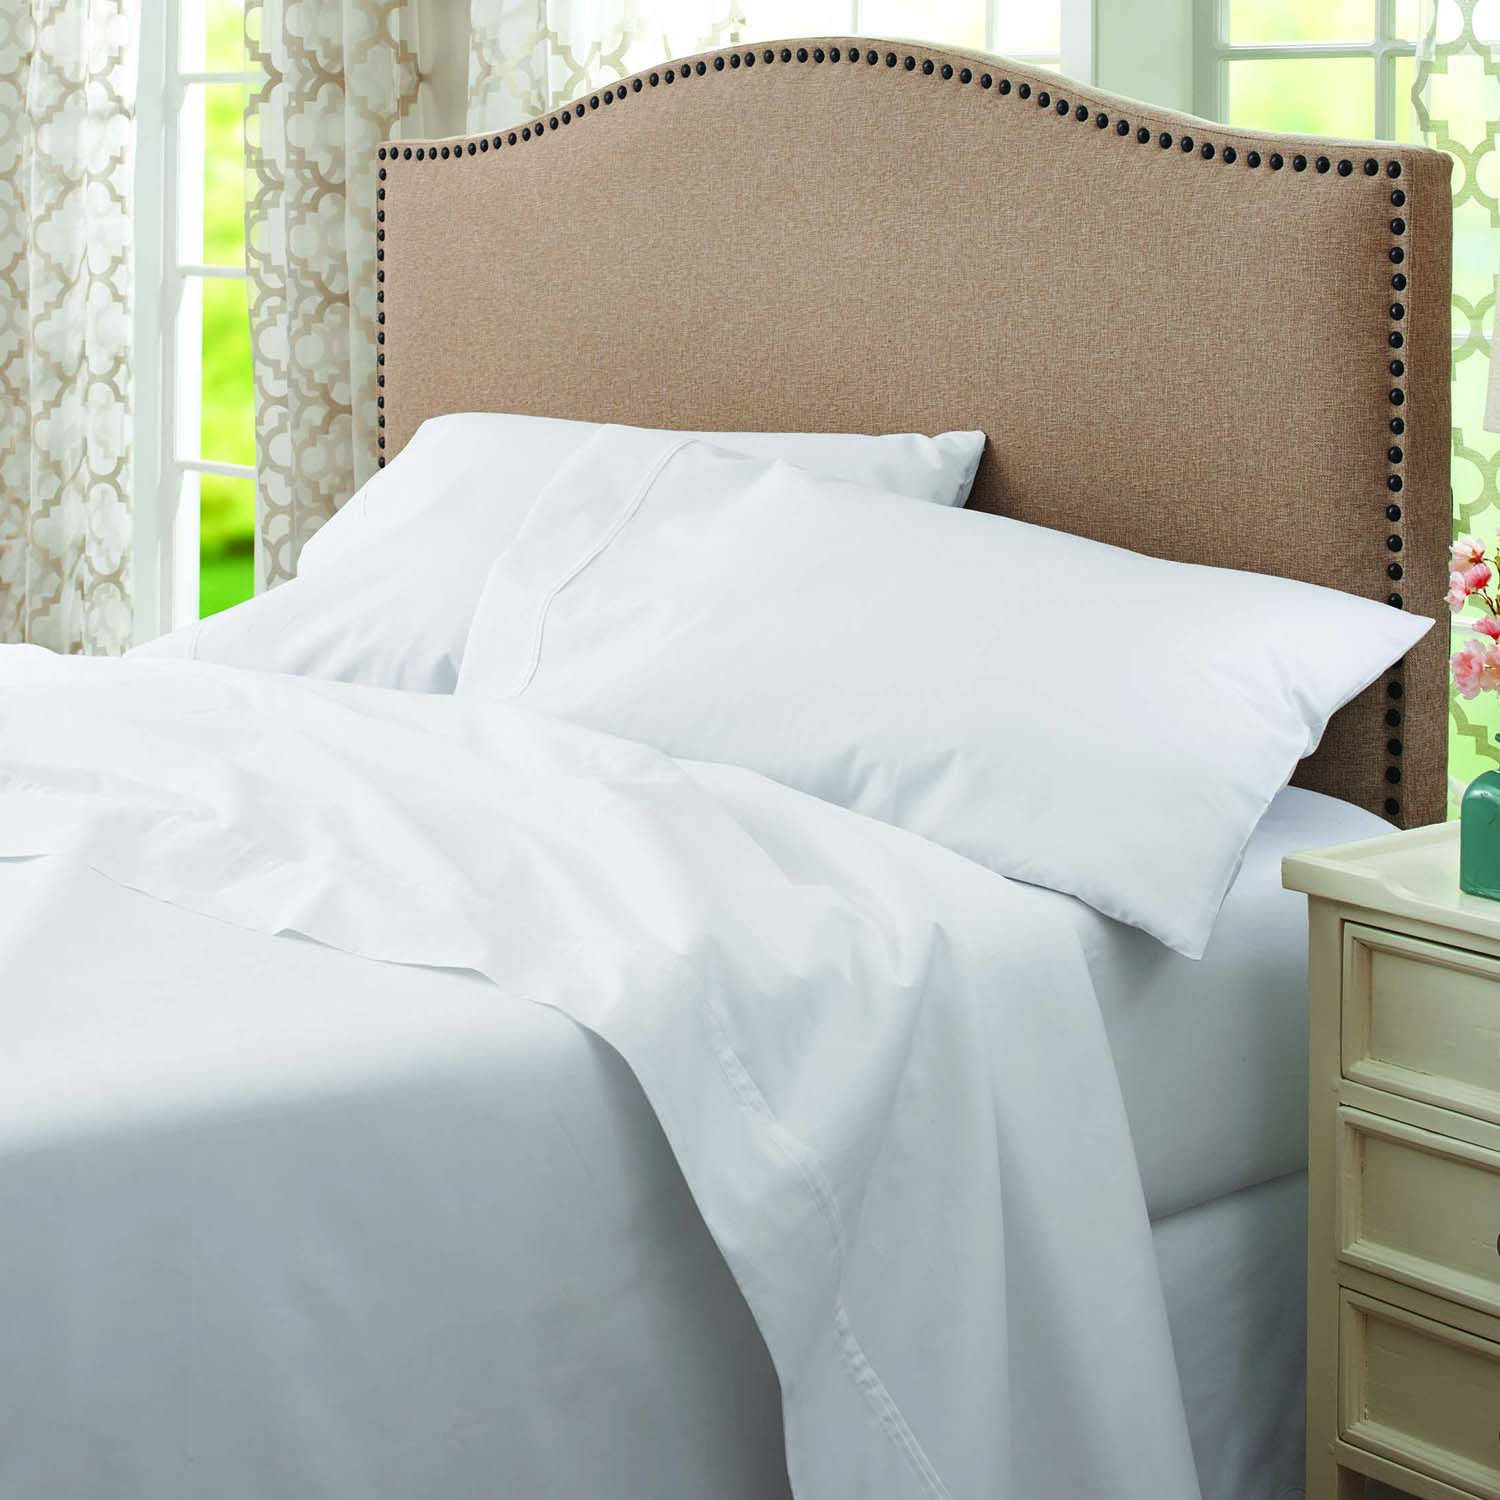 Amazing cotton percale sheets with Amazing Combine Color Sheets Ideas